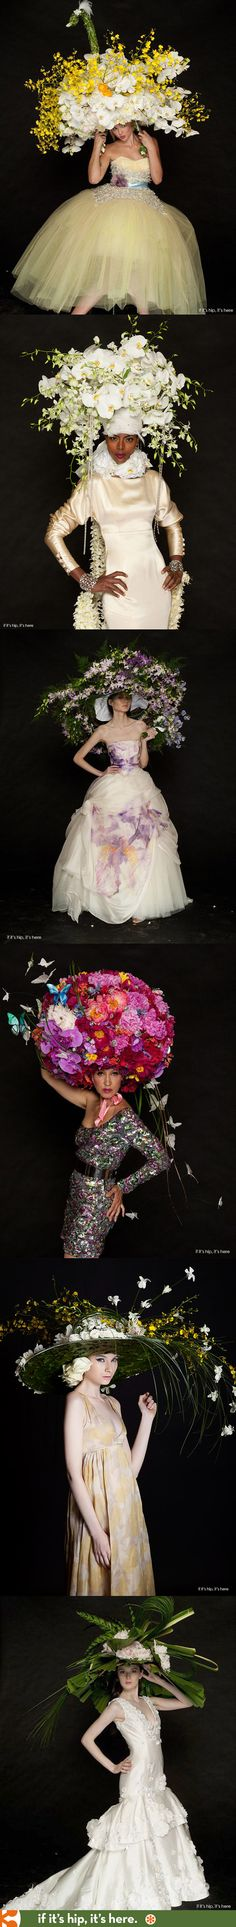 Spectacular Easter Bonnets designed by florists using thousands of real flowers.